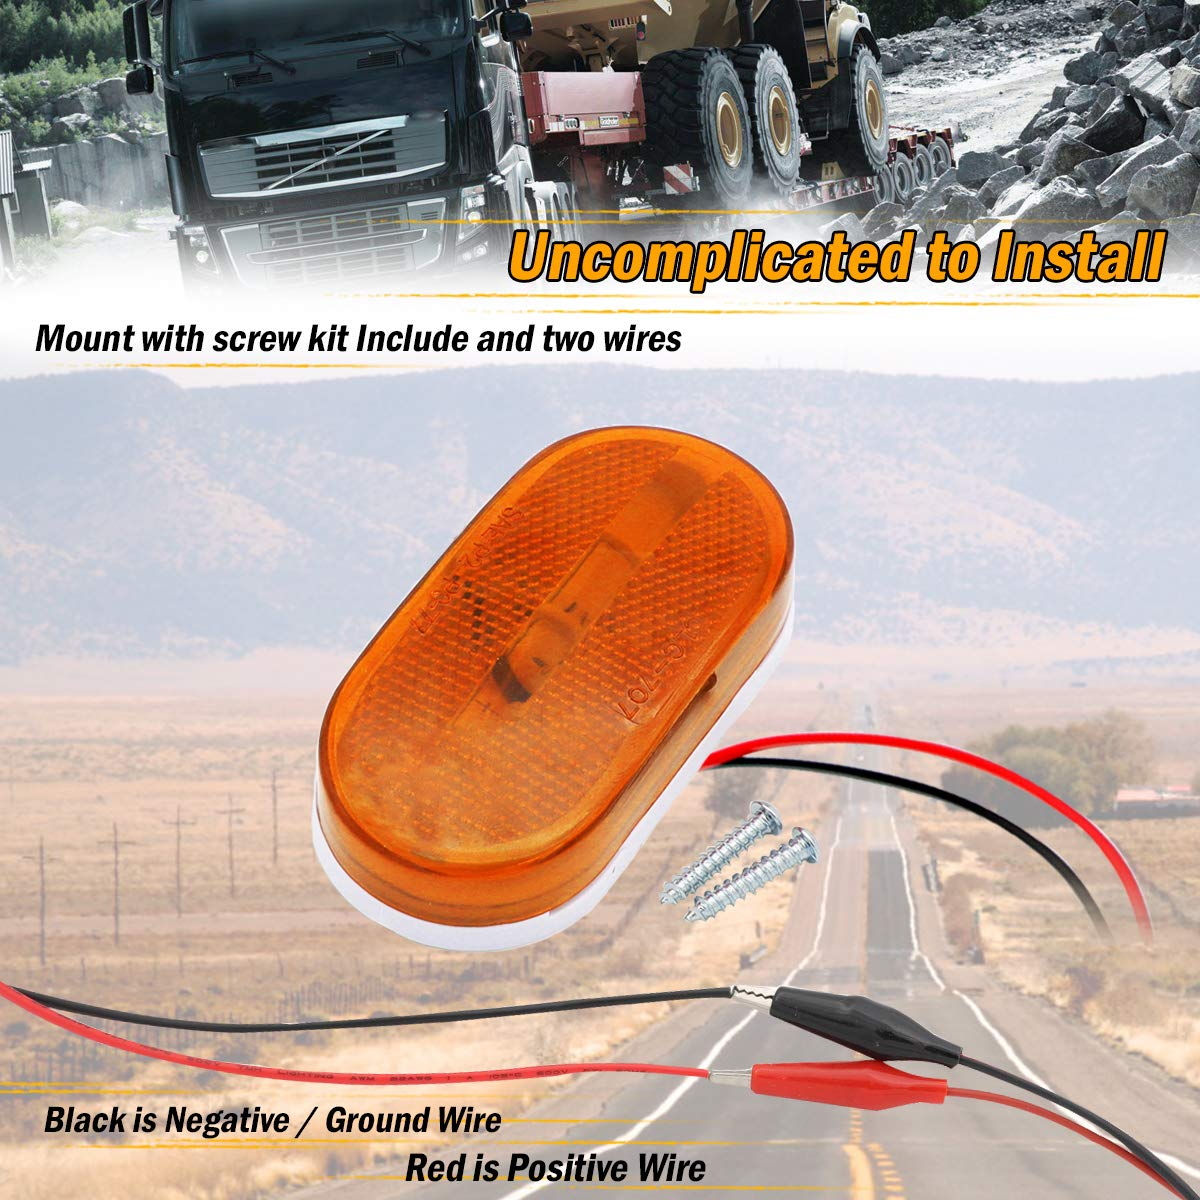 Meerkatt Oblate Amber Rectangle LED Side Marker Clearance Lamp Sealed Surface Mount w//Reflex Lens Indicator Lights 6 Diodes Trailer Truck Coach Tow Pickup Jeep SUV 12v DC Universal TT12 Pack of 10